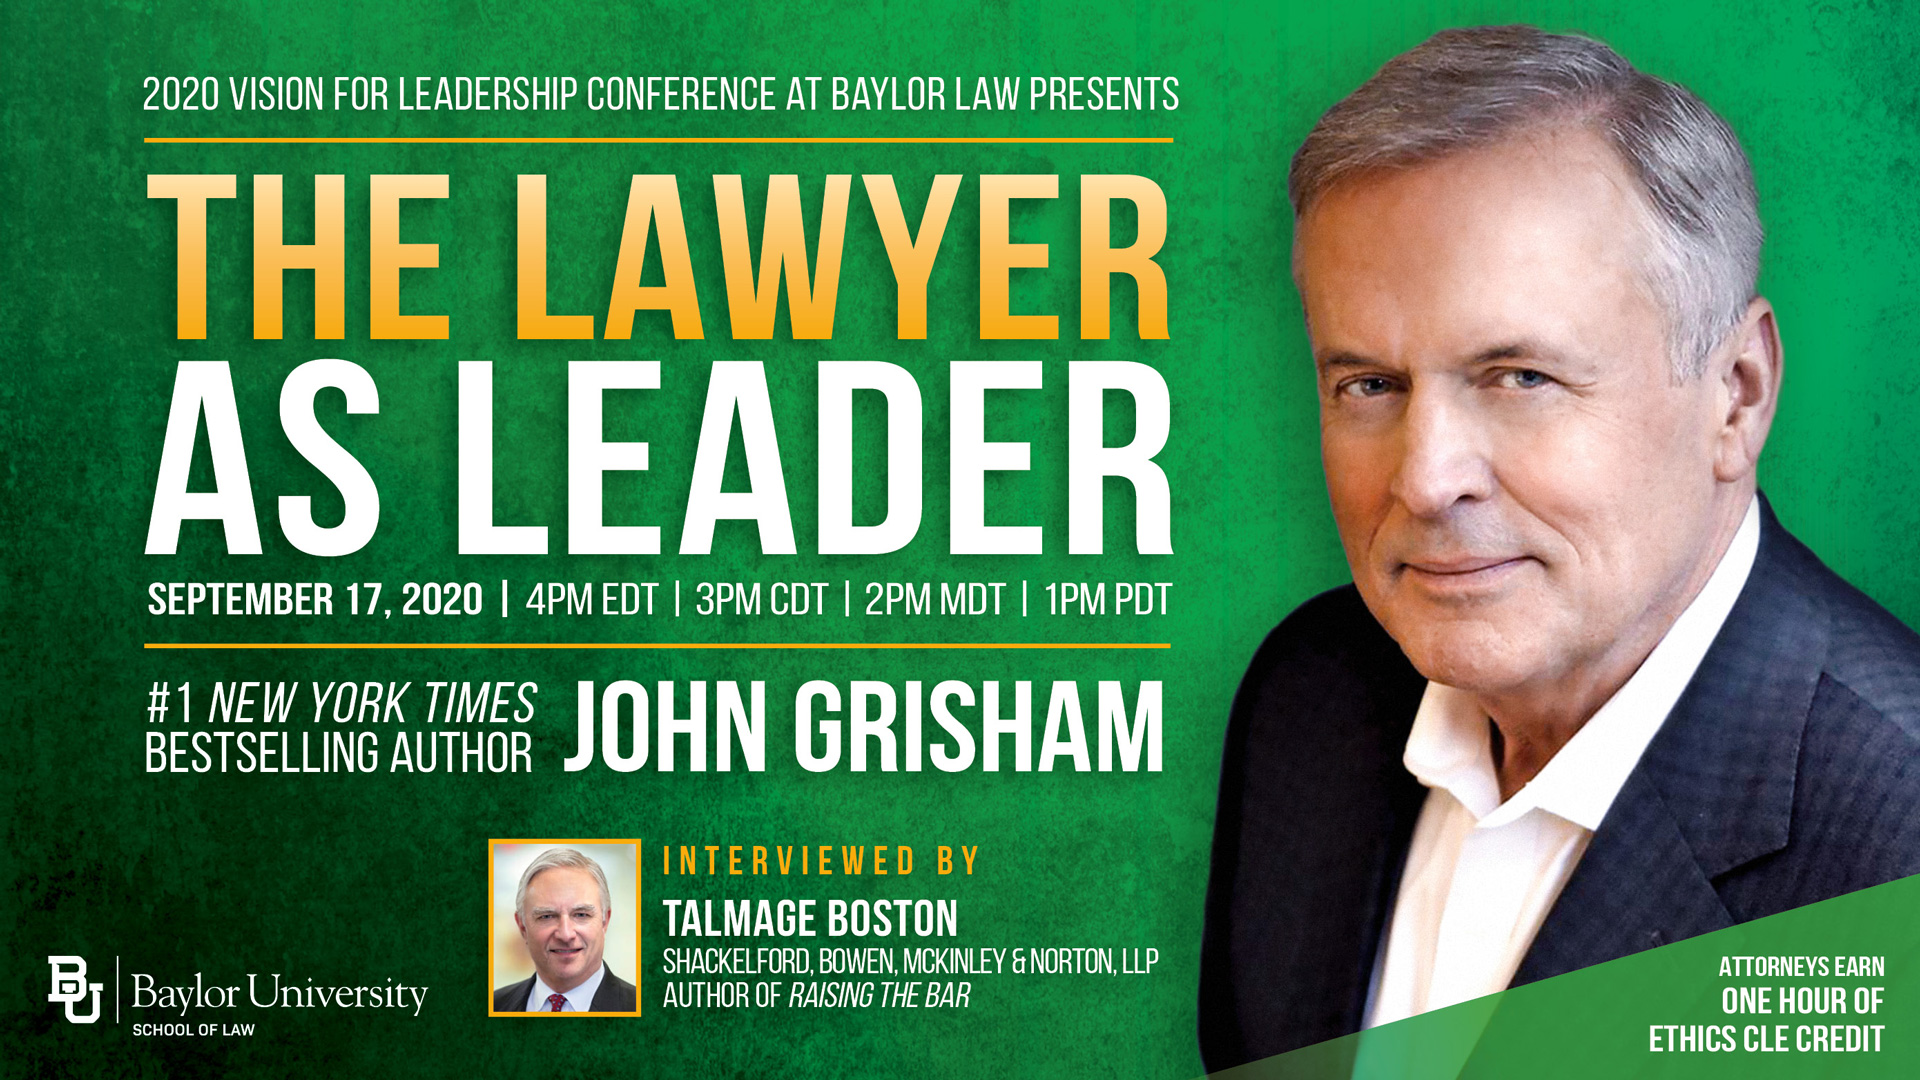 Banner image for John Grisham Session at Vision for Leadership Conference